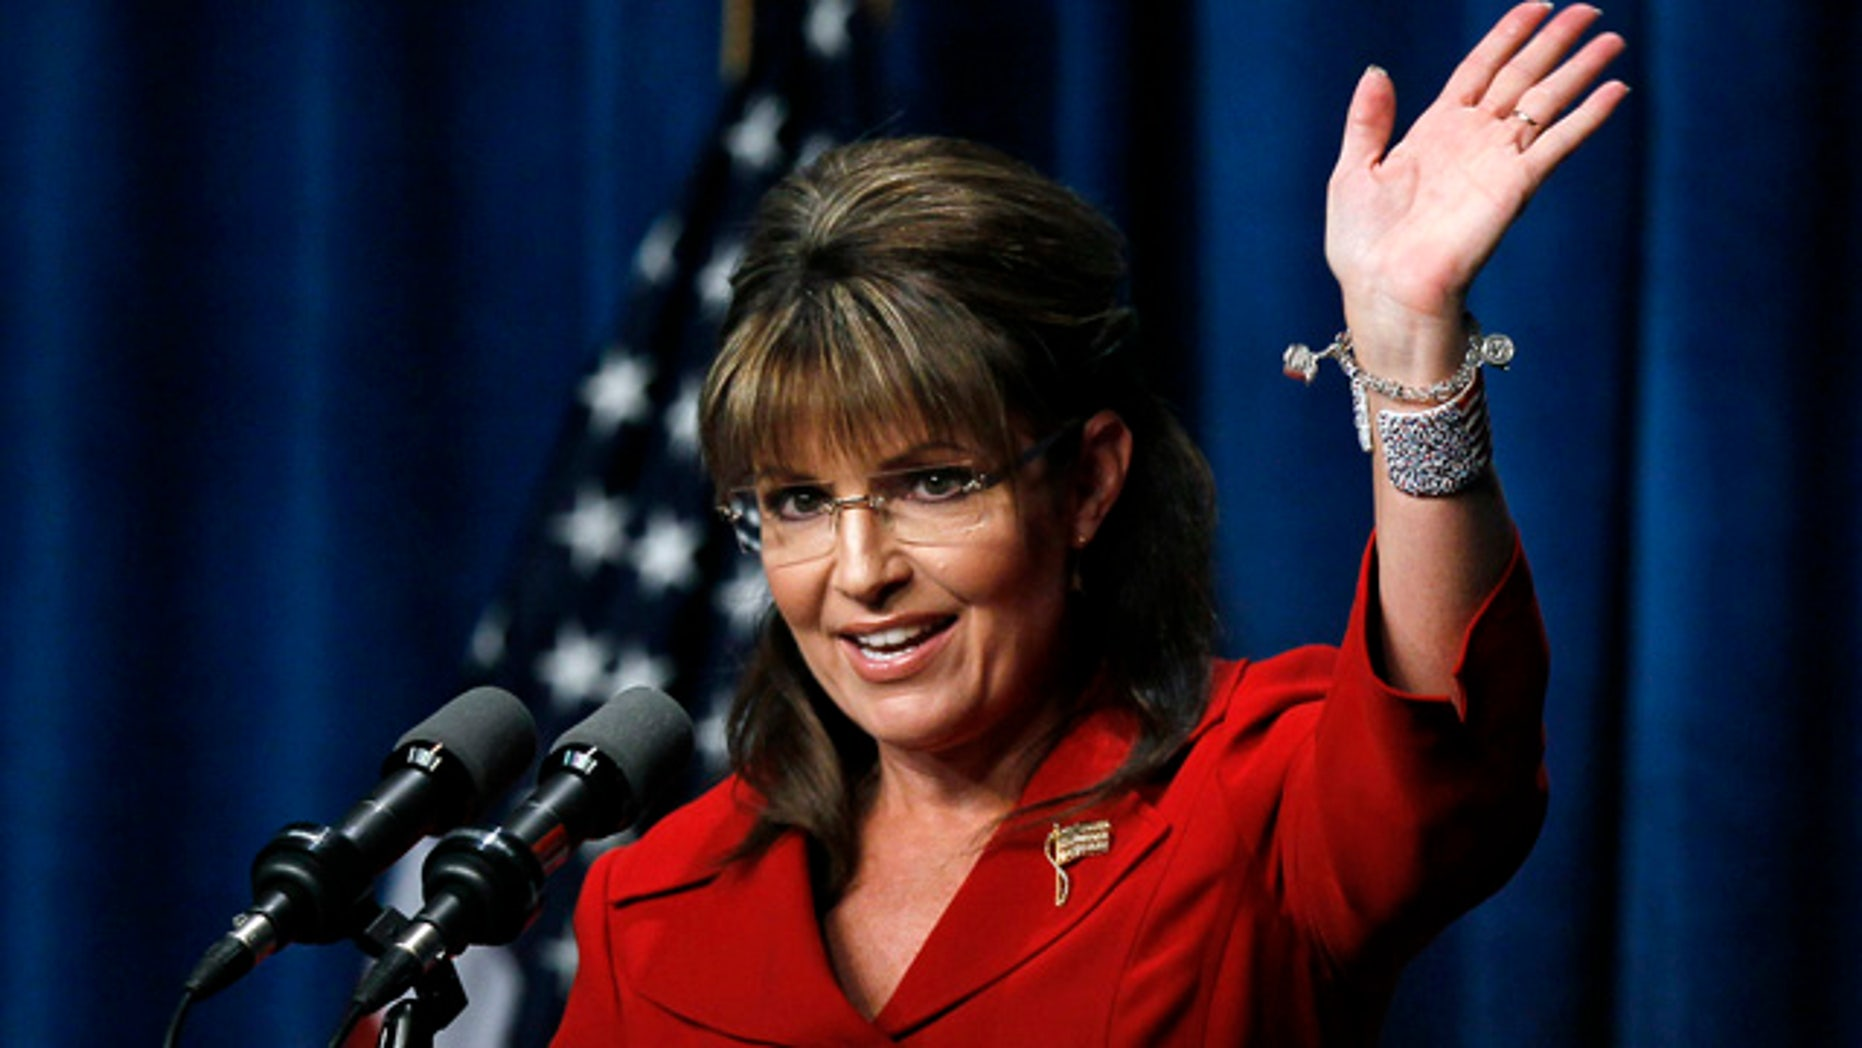 Sept. 17: Former Alaska Gov. Sarah Palin waves after speaking at the Republican Party of Iowa's Ronald Reagan Dinner in Des Moines, Iowa.